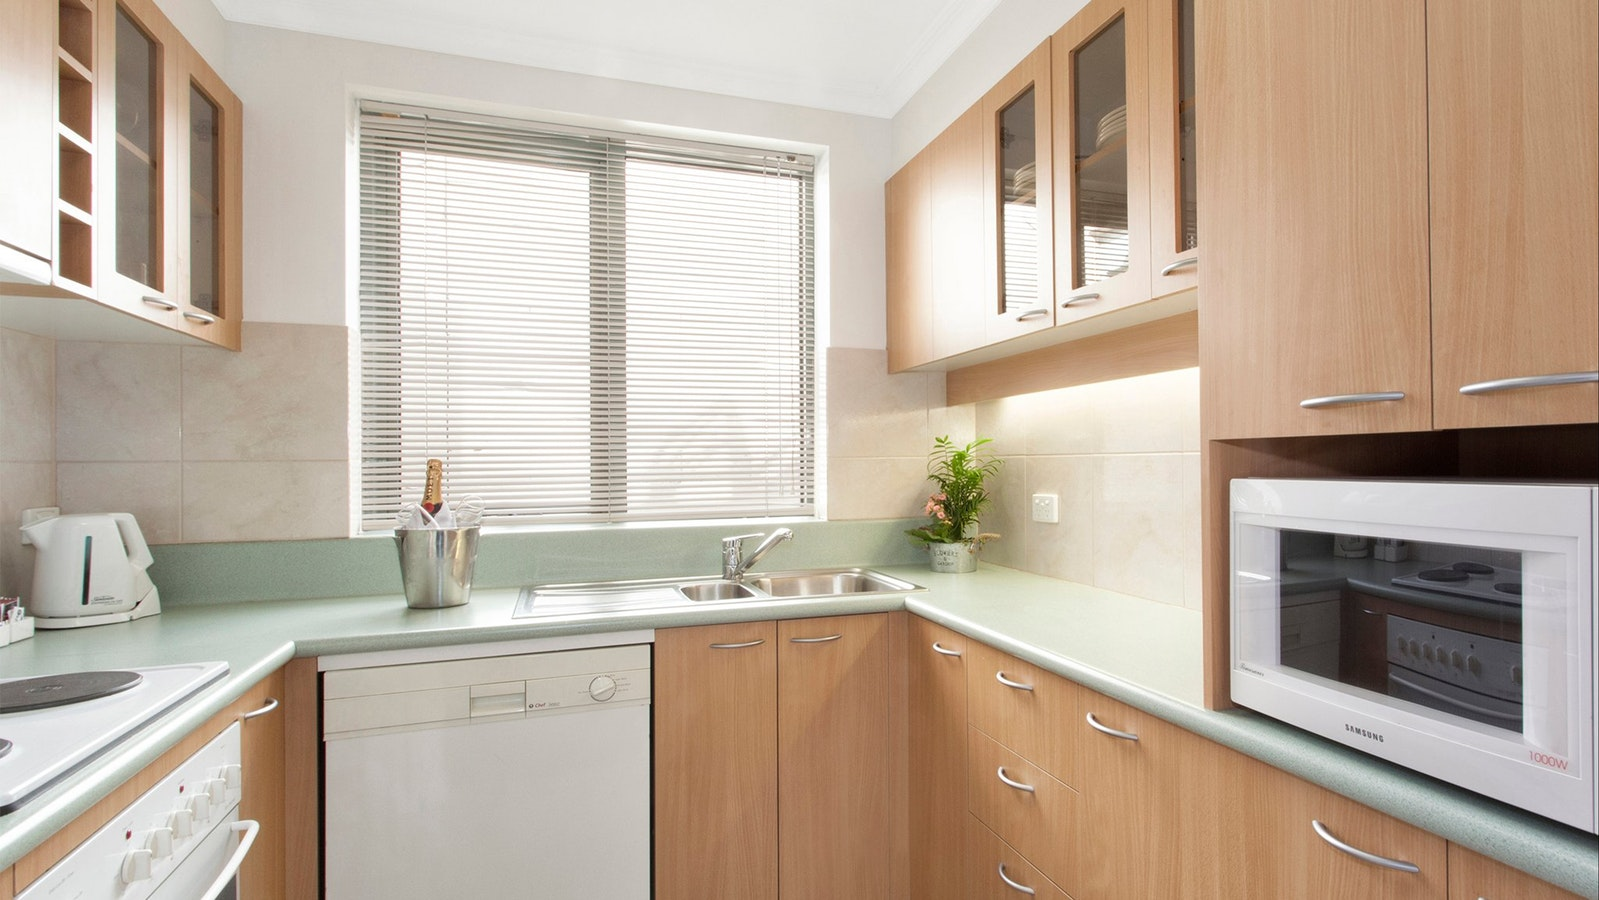 Kitchenette's and Fully equipped kitchens